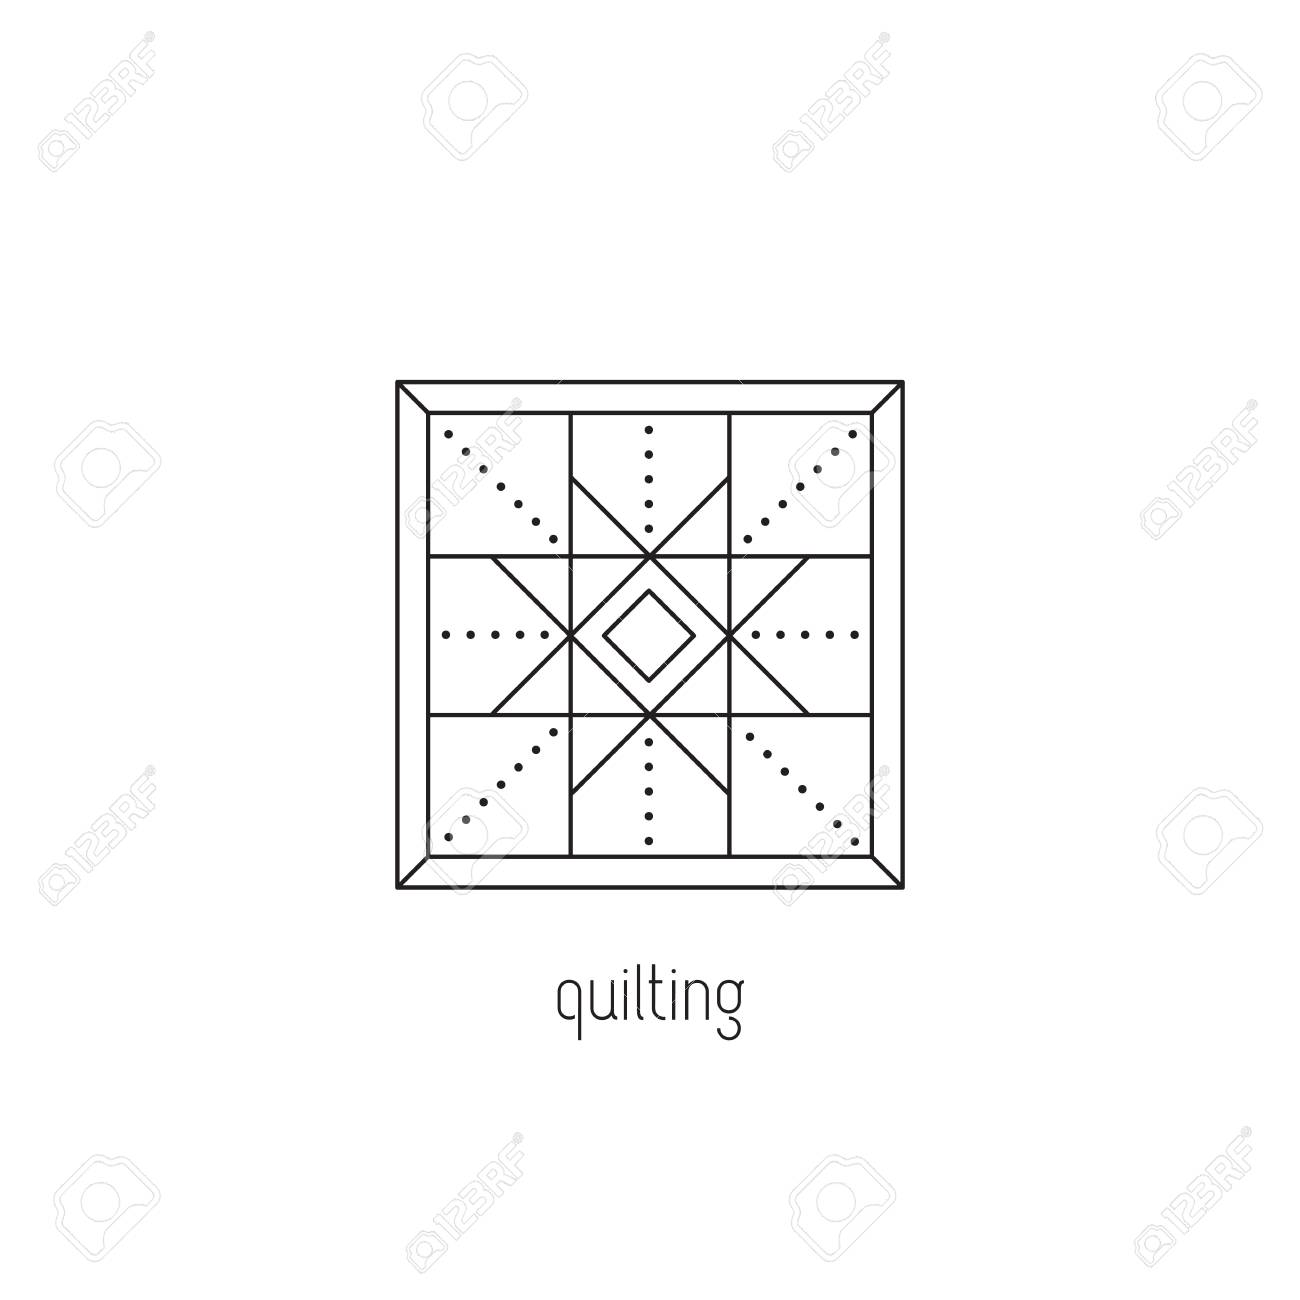 Quilting vector thin line icon patchwork blanket handmade quilt quilting vector thin line icon patchwork blanket handmade quilt colored isolated symbol reheart Choice Image